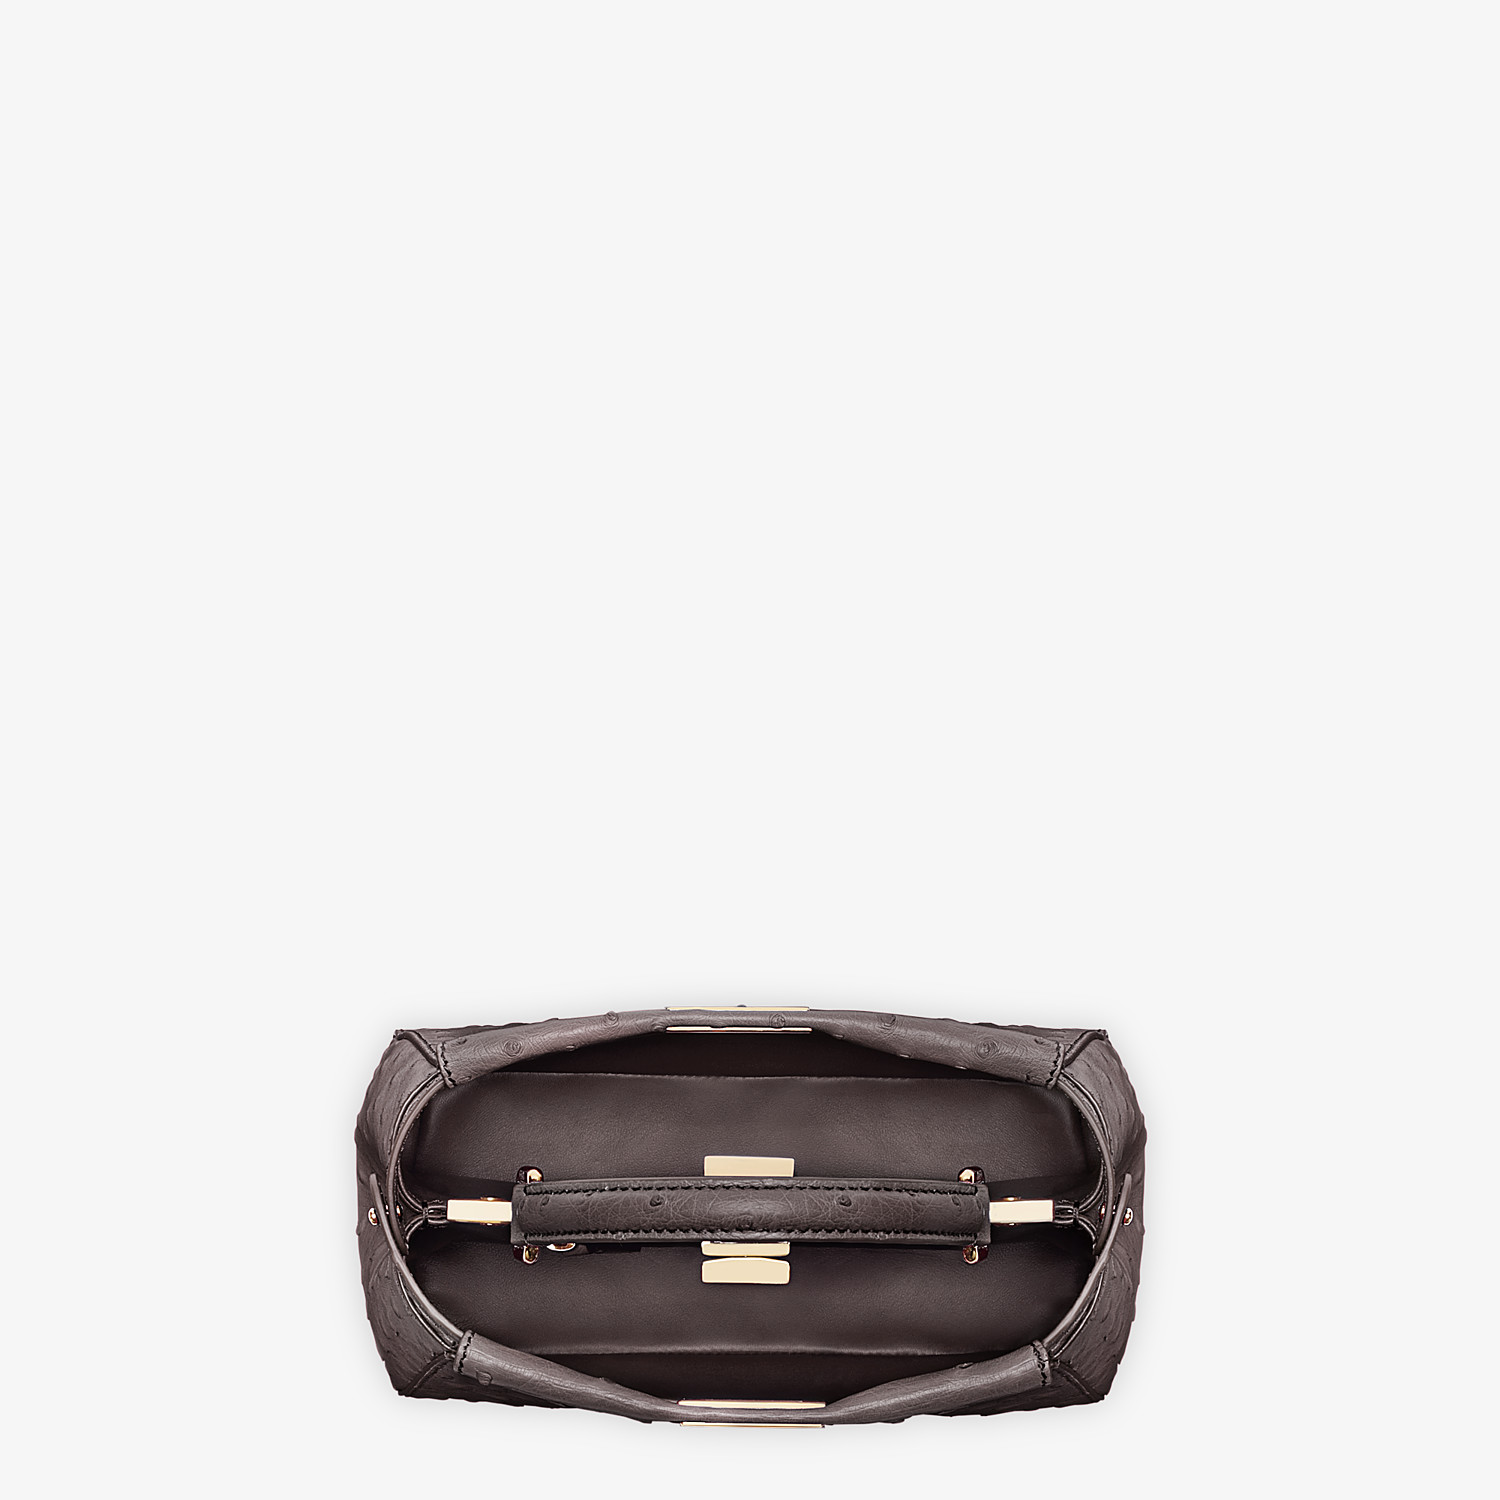 FENDI PEEKABOO ICONIC MINI - Brown ostrich leather bag - view 4 detail